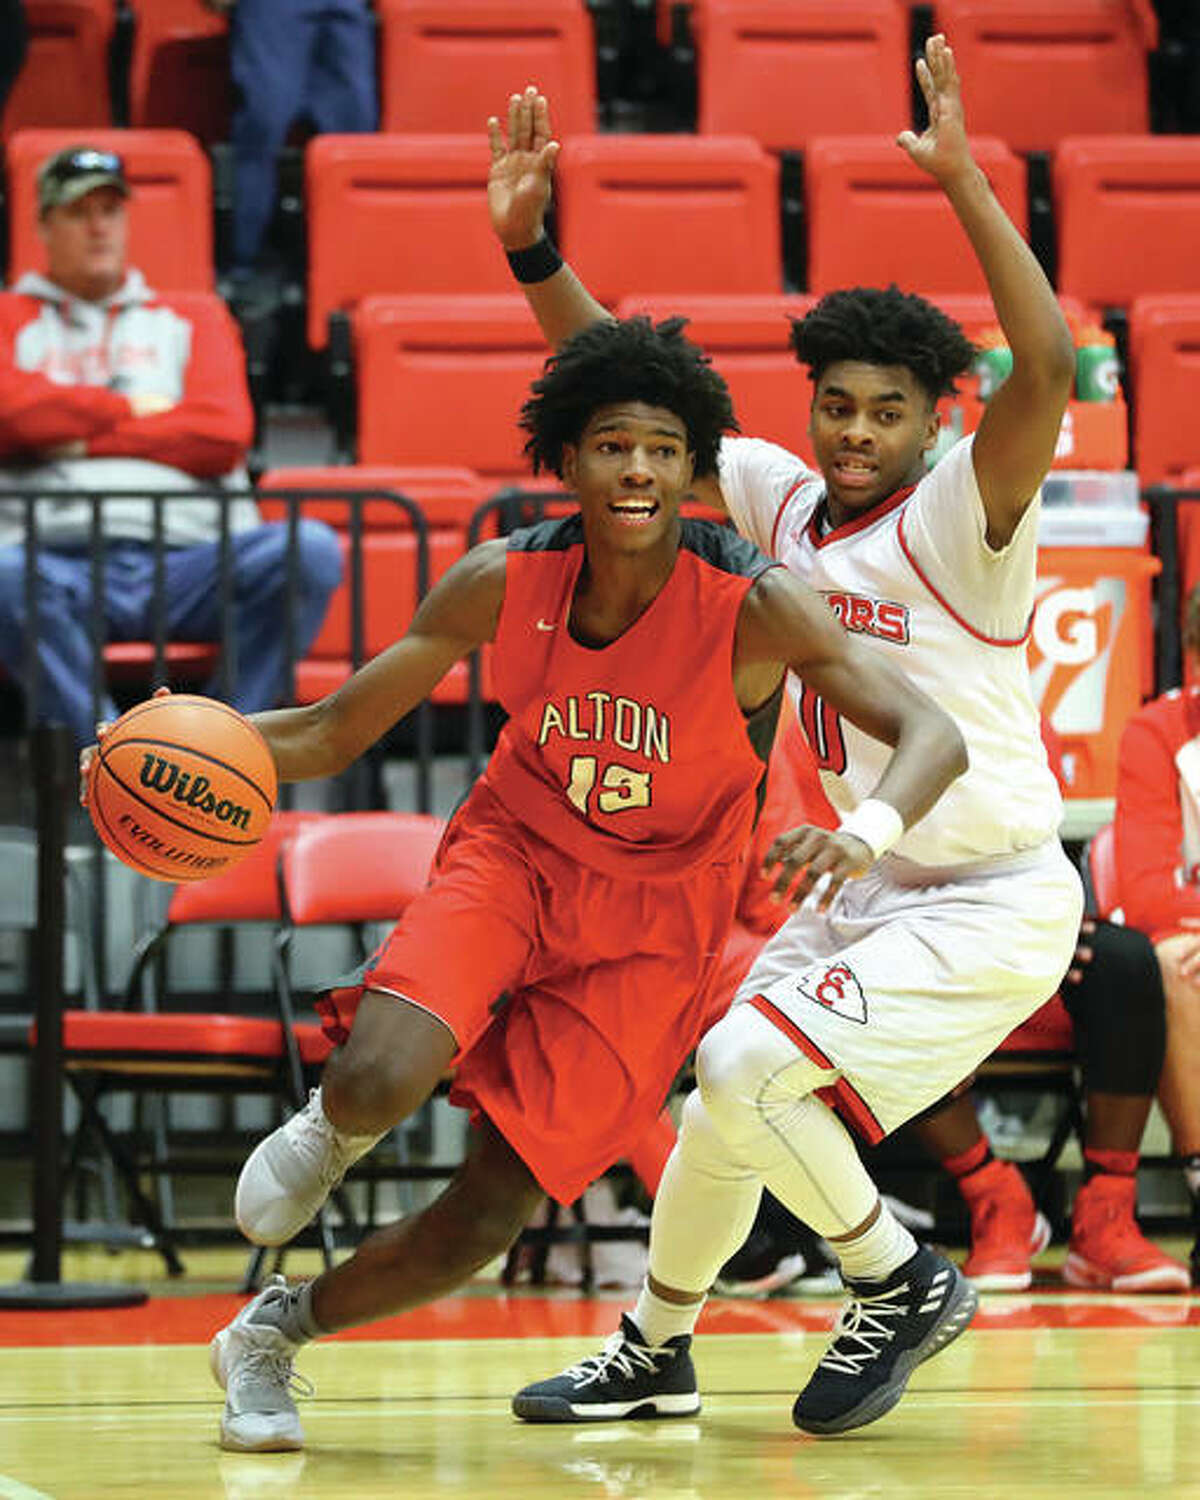 Alton's Malik Smith (left) drives the baseline after getting past Granite City's Jerry Watson during Saturday's game at SIUE's Vadalabene Center.